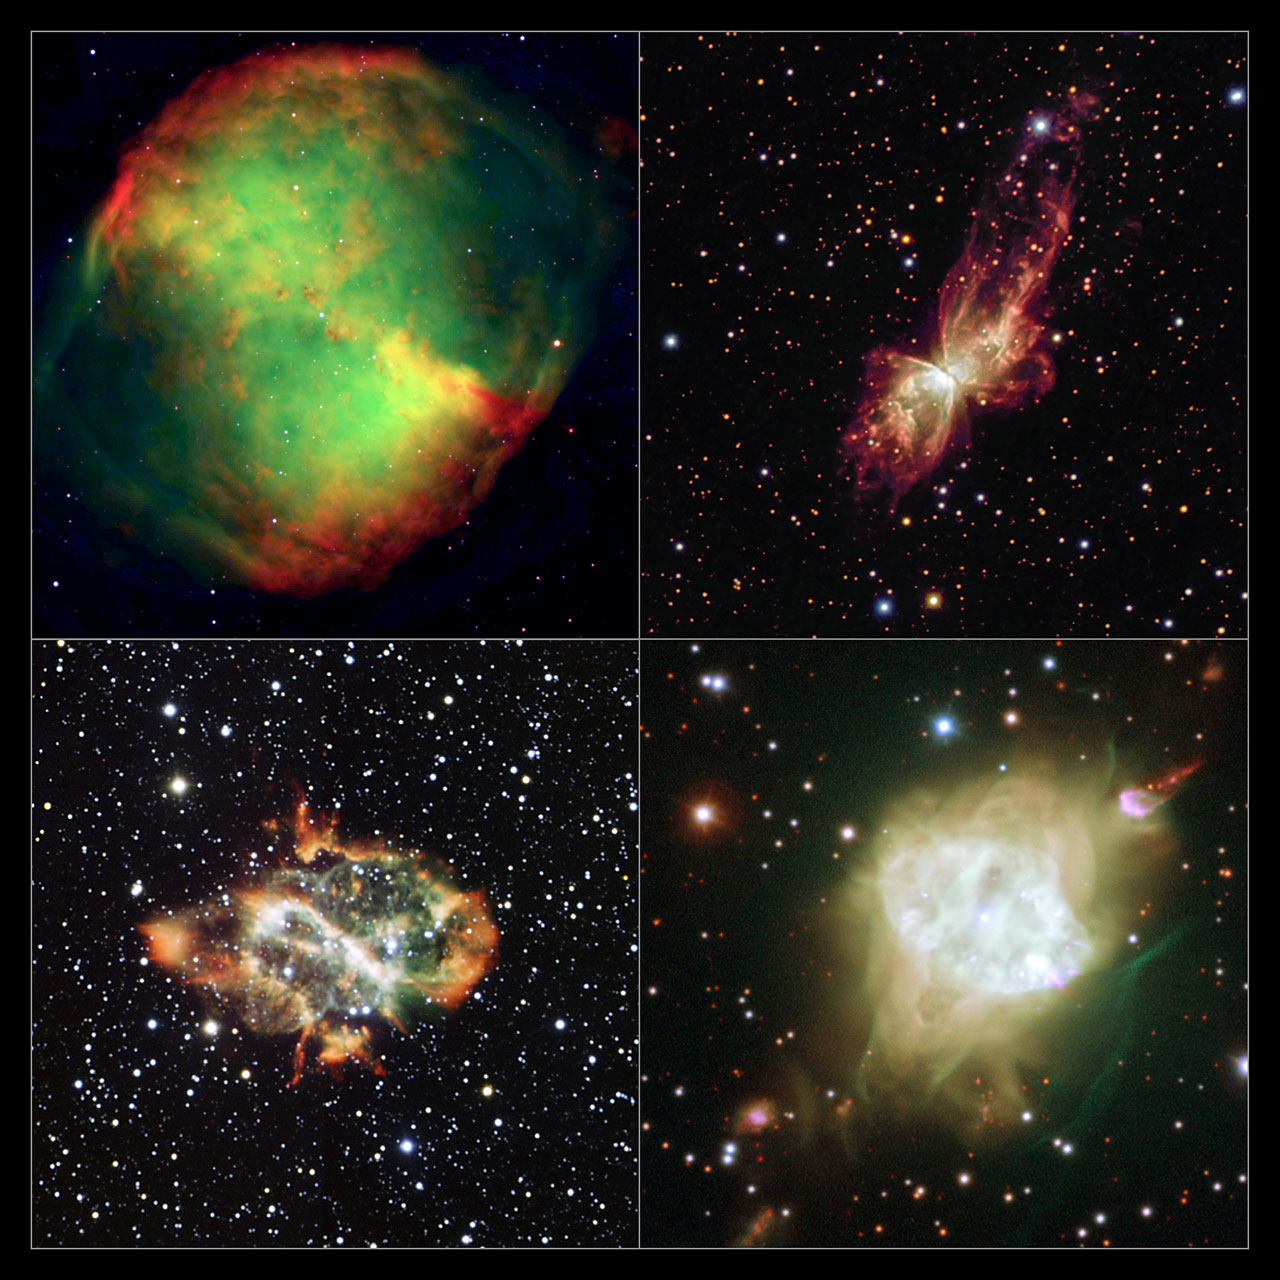 Hubble and NTT Capture Strange Alignment of Planetary Nebulae